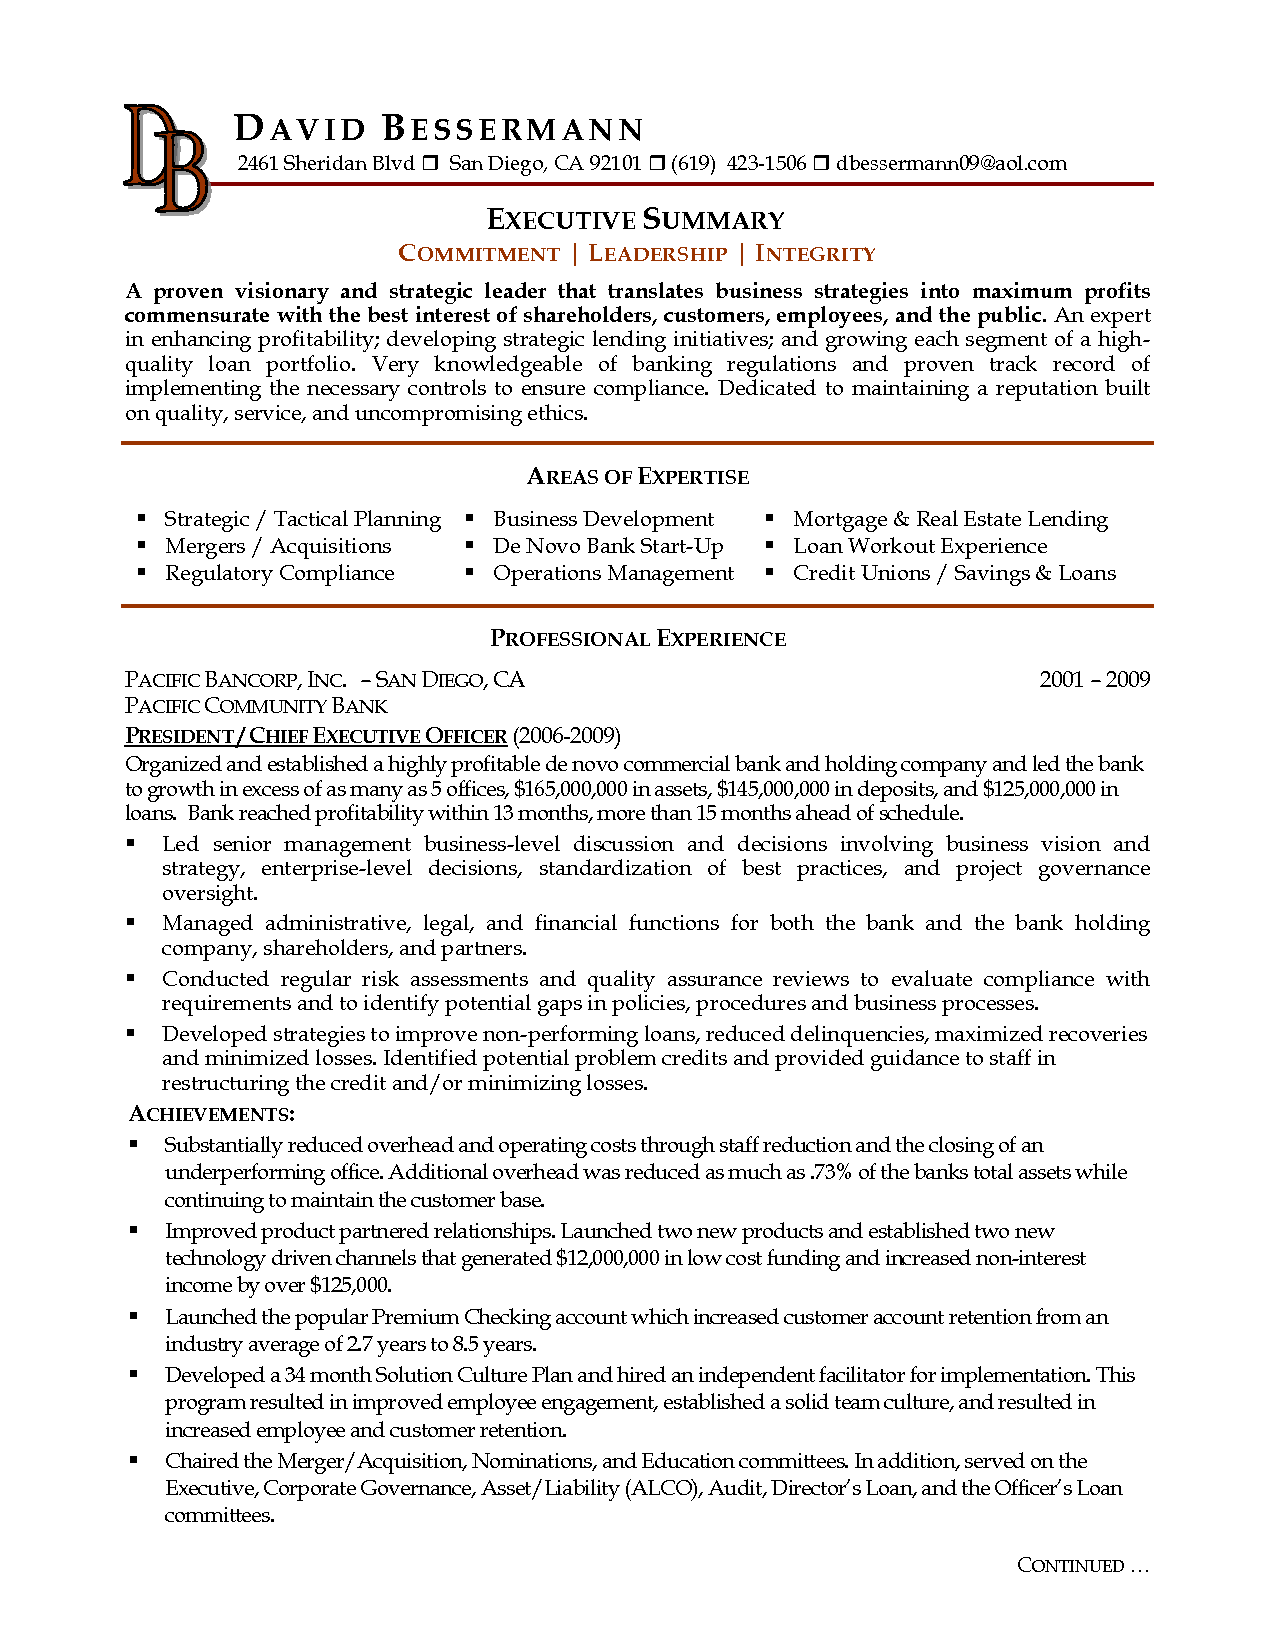 Resume Formats Format Software Samples Cover Letter Related Free